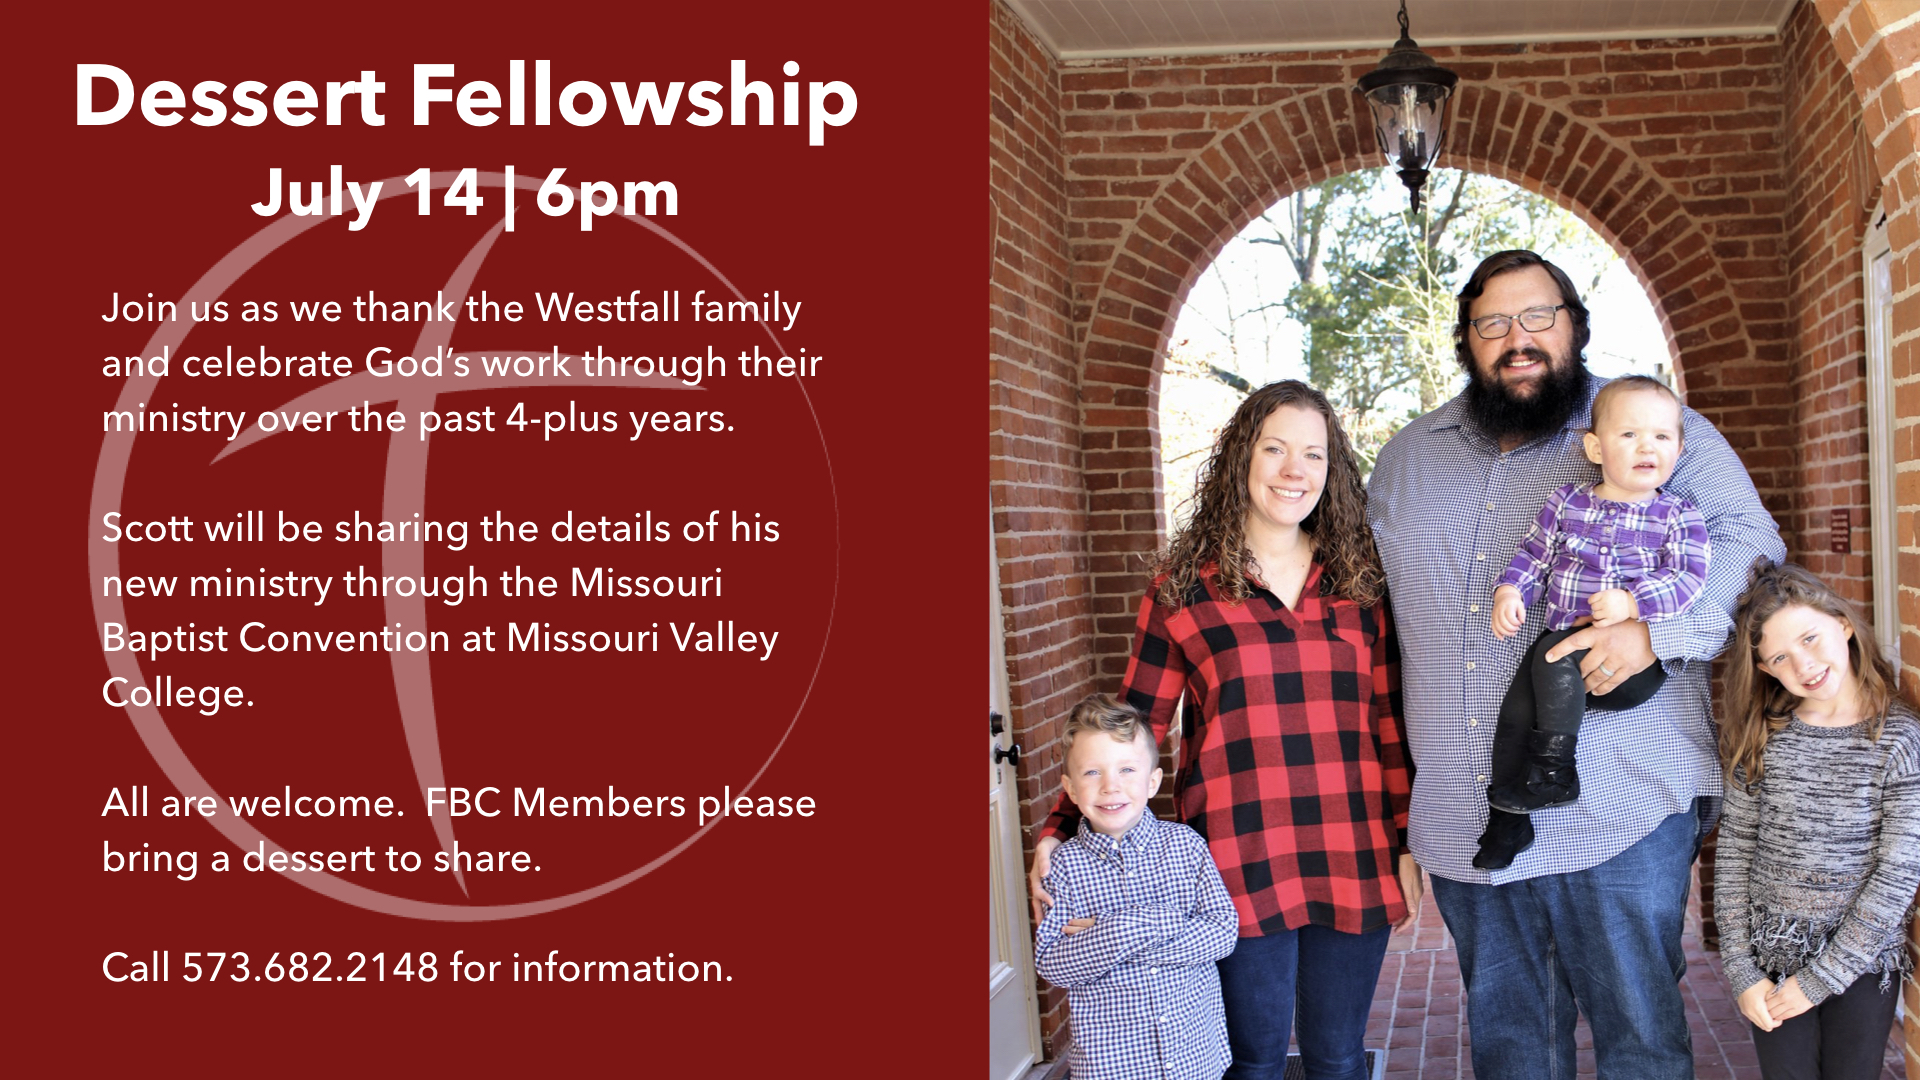 Join us as we thank the Westfall family and celebrate God's work through their ministry over the past 4-plus years.  Scott will be sharing the details of his new ministry through the Missouri Baptist Convention at Missouri Valley College.  All are welcome. FBC Members please bring a dessert to share.  Call 573.682.2148 for information.